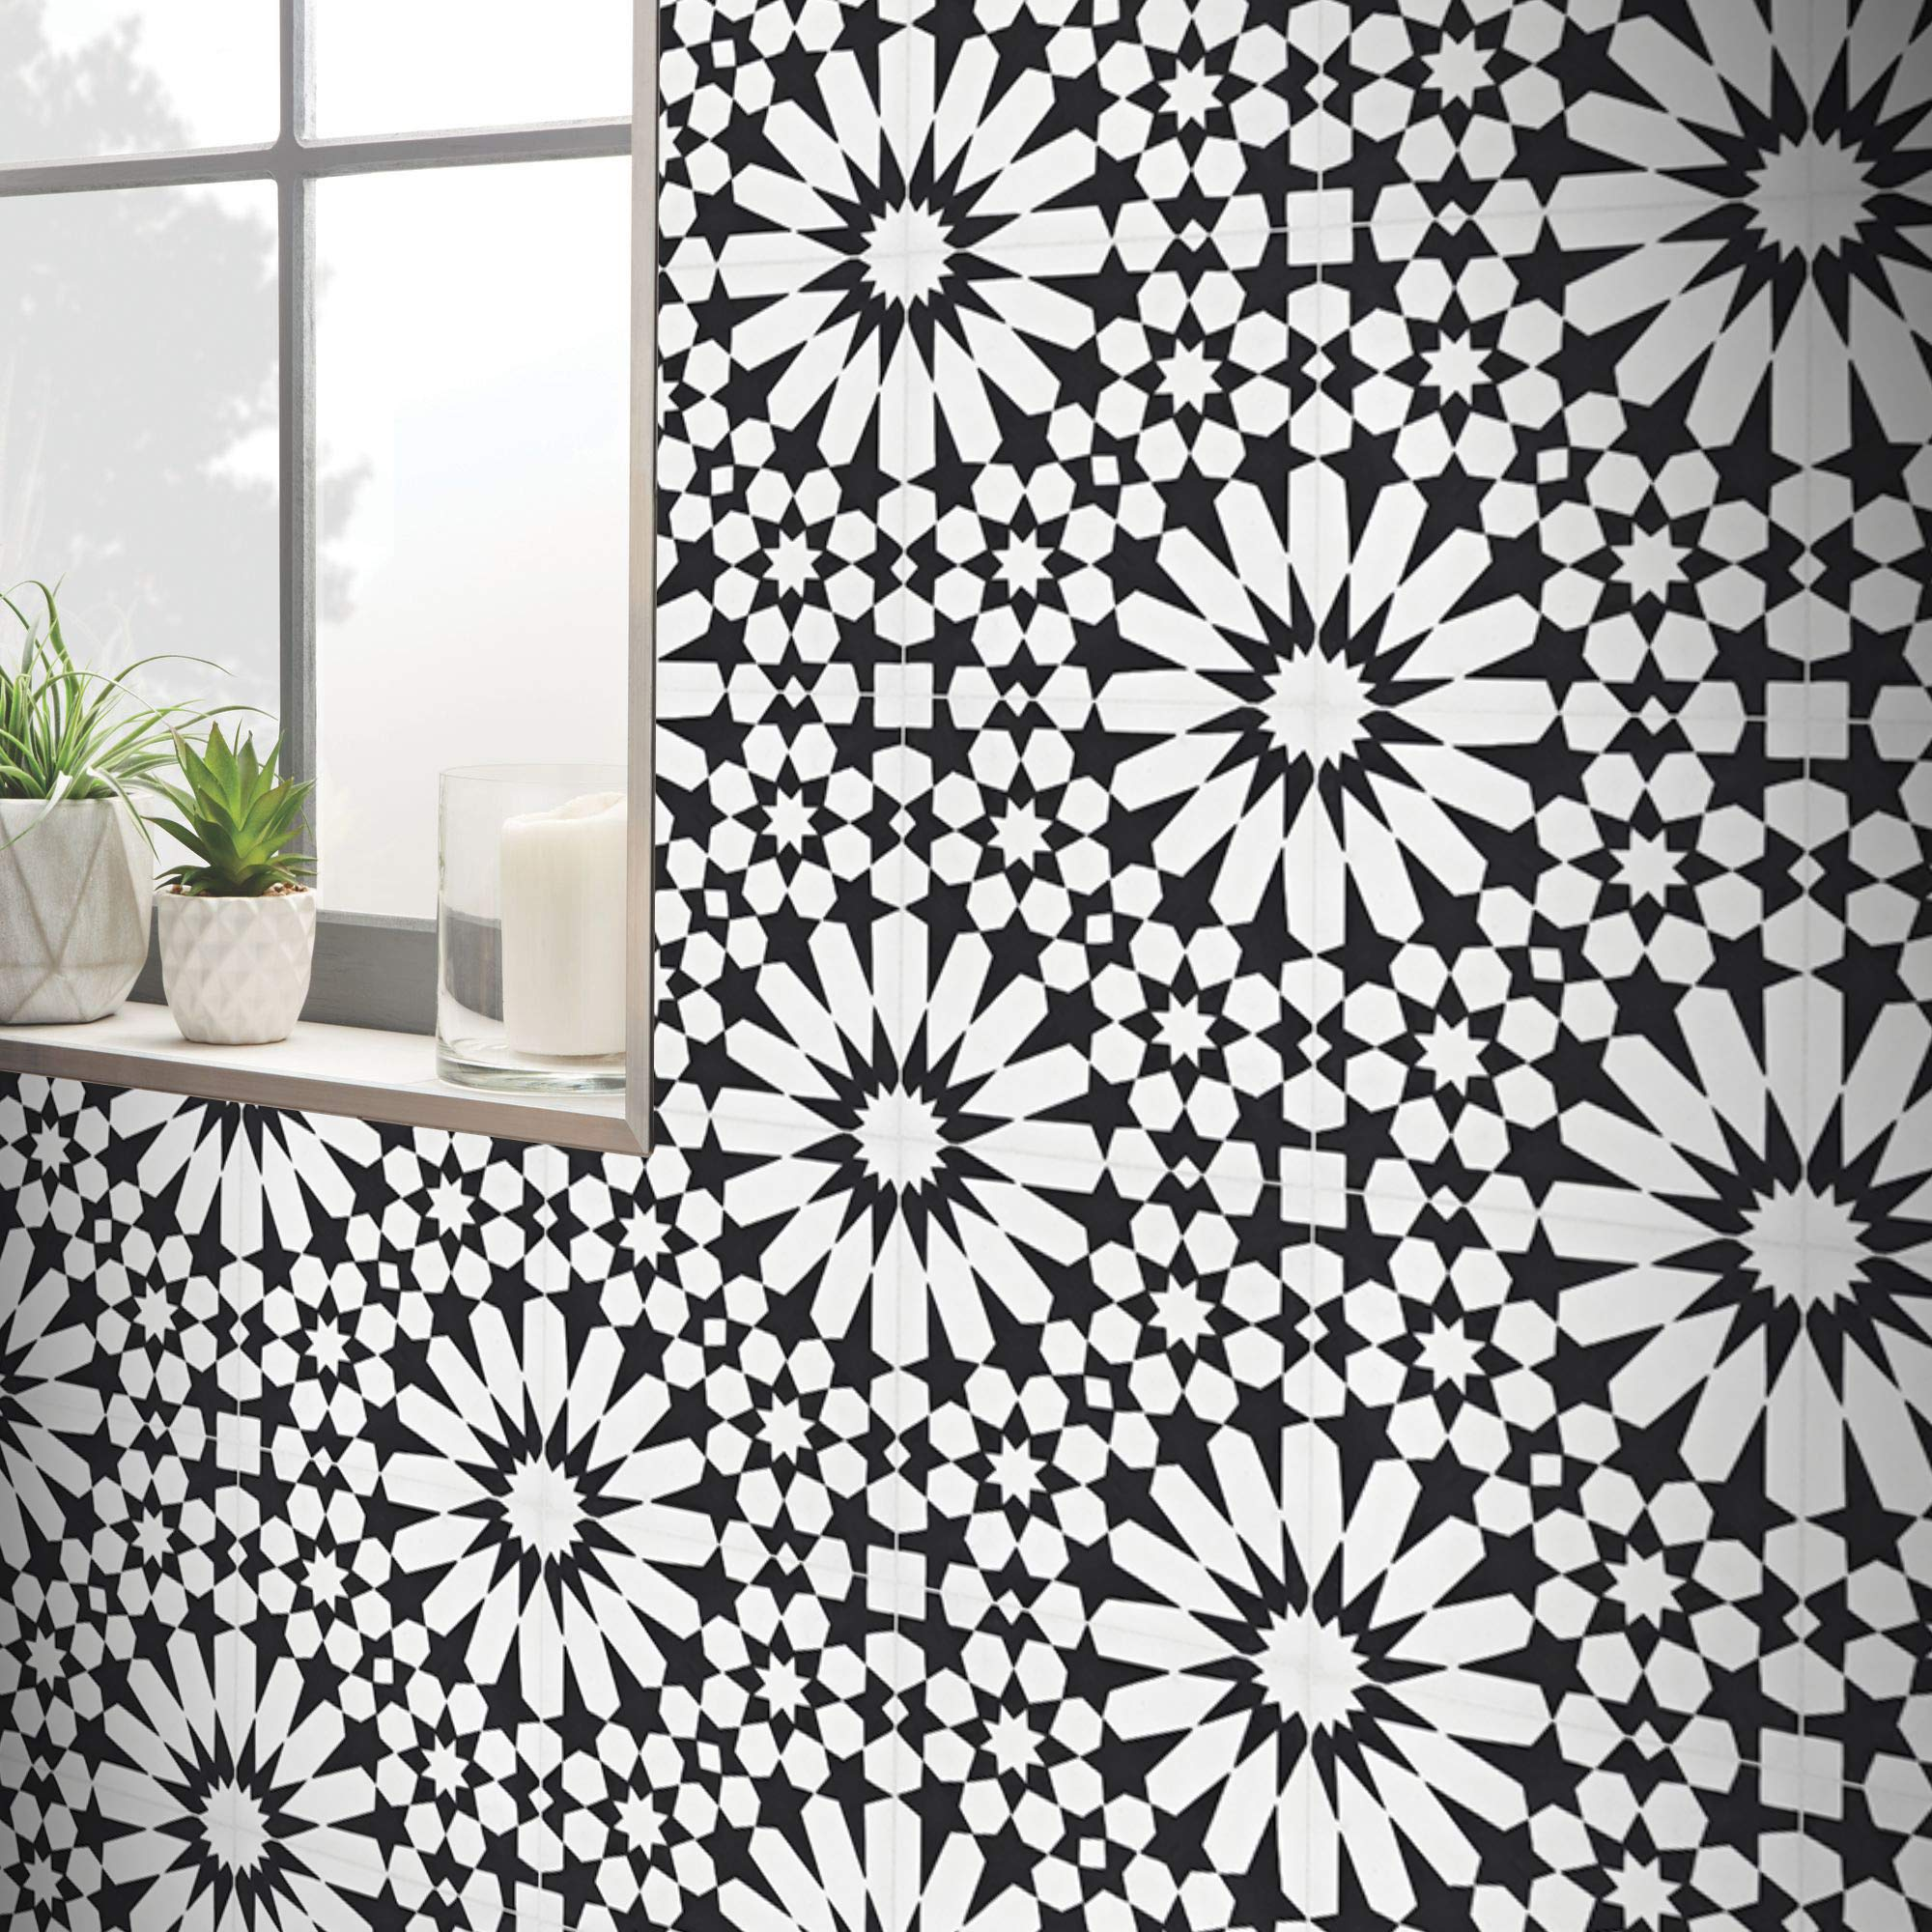 Moroccan Mosaic & Tile House CTP09-05 Agdal Handmade Cement Tile in Black and White 8''x8'',